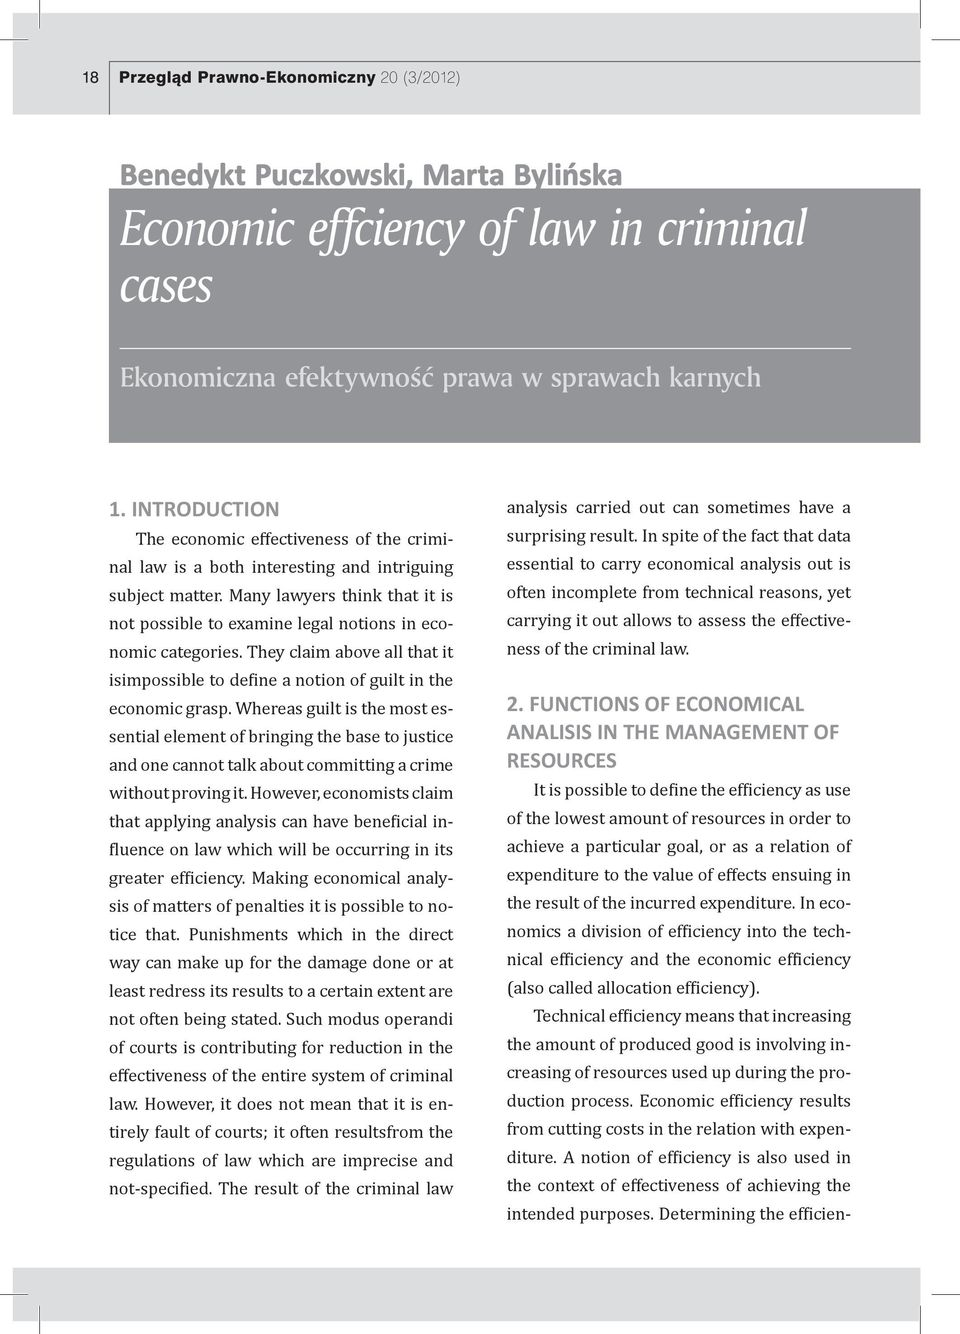 Many lawyers think that it is not possible to examine legal notions in economic categories. They claim above all that it isimpossible to define a notion of guilt in the economic grasp.